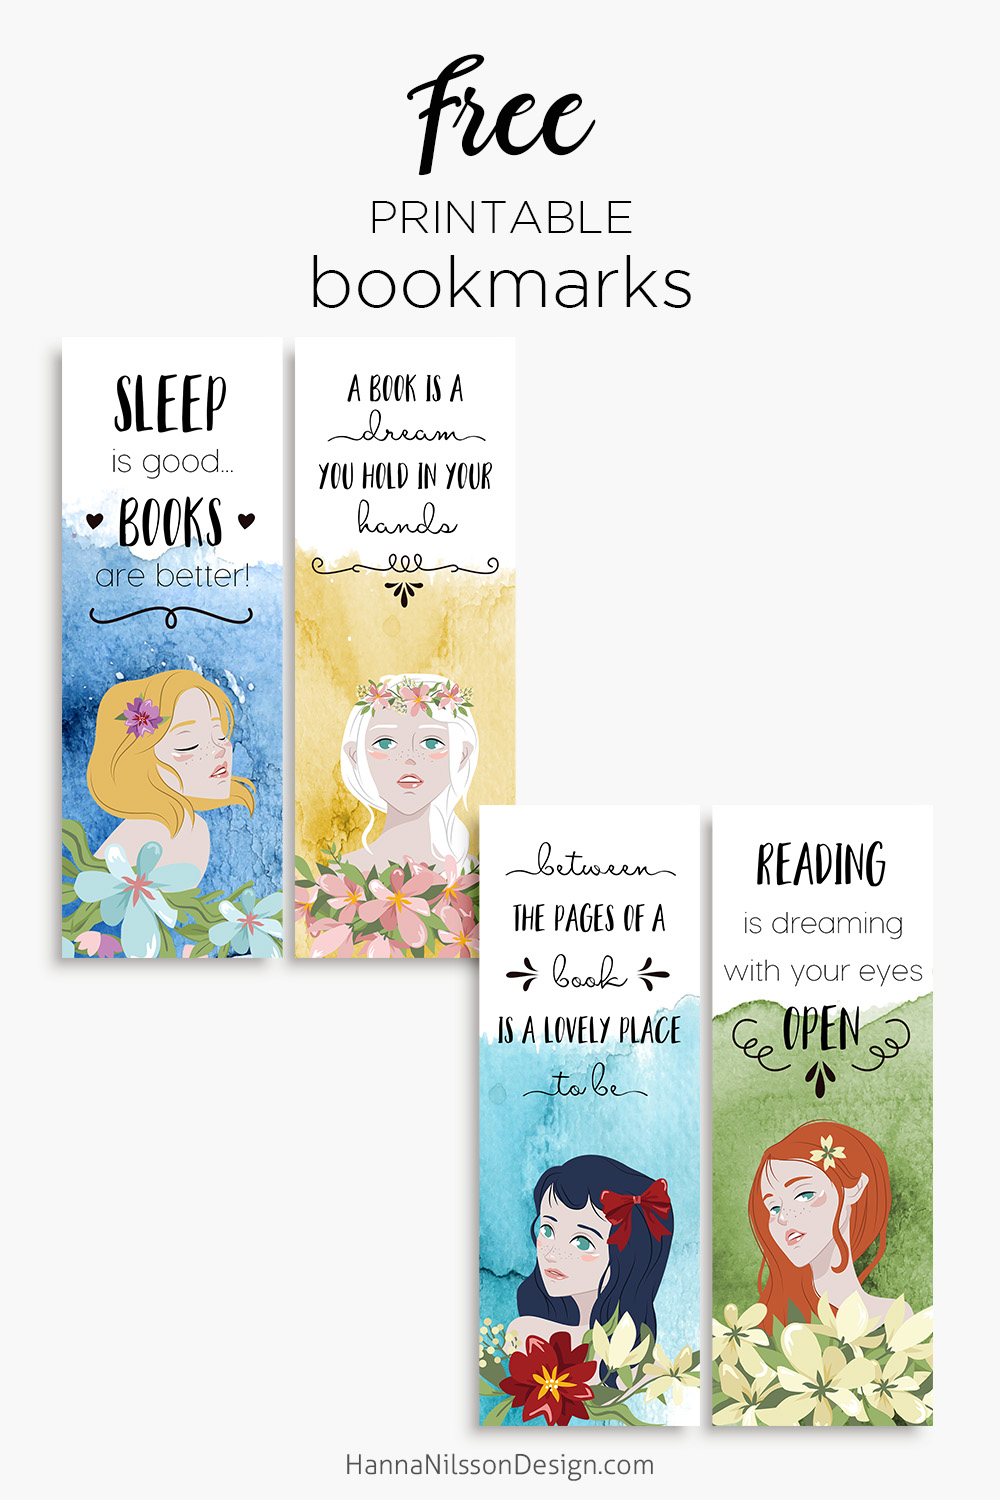 picture about Printable Bookmarks With Quotes named Bookmarks Hanna Nilsson Structure